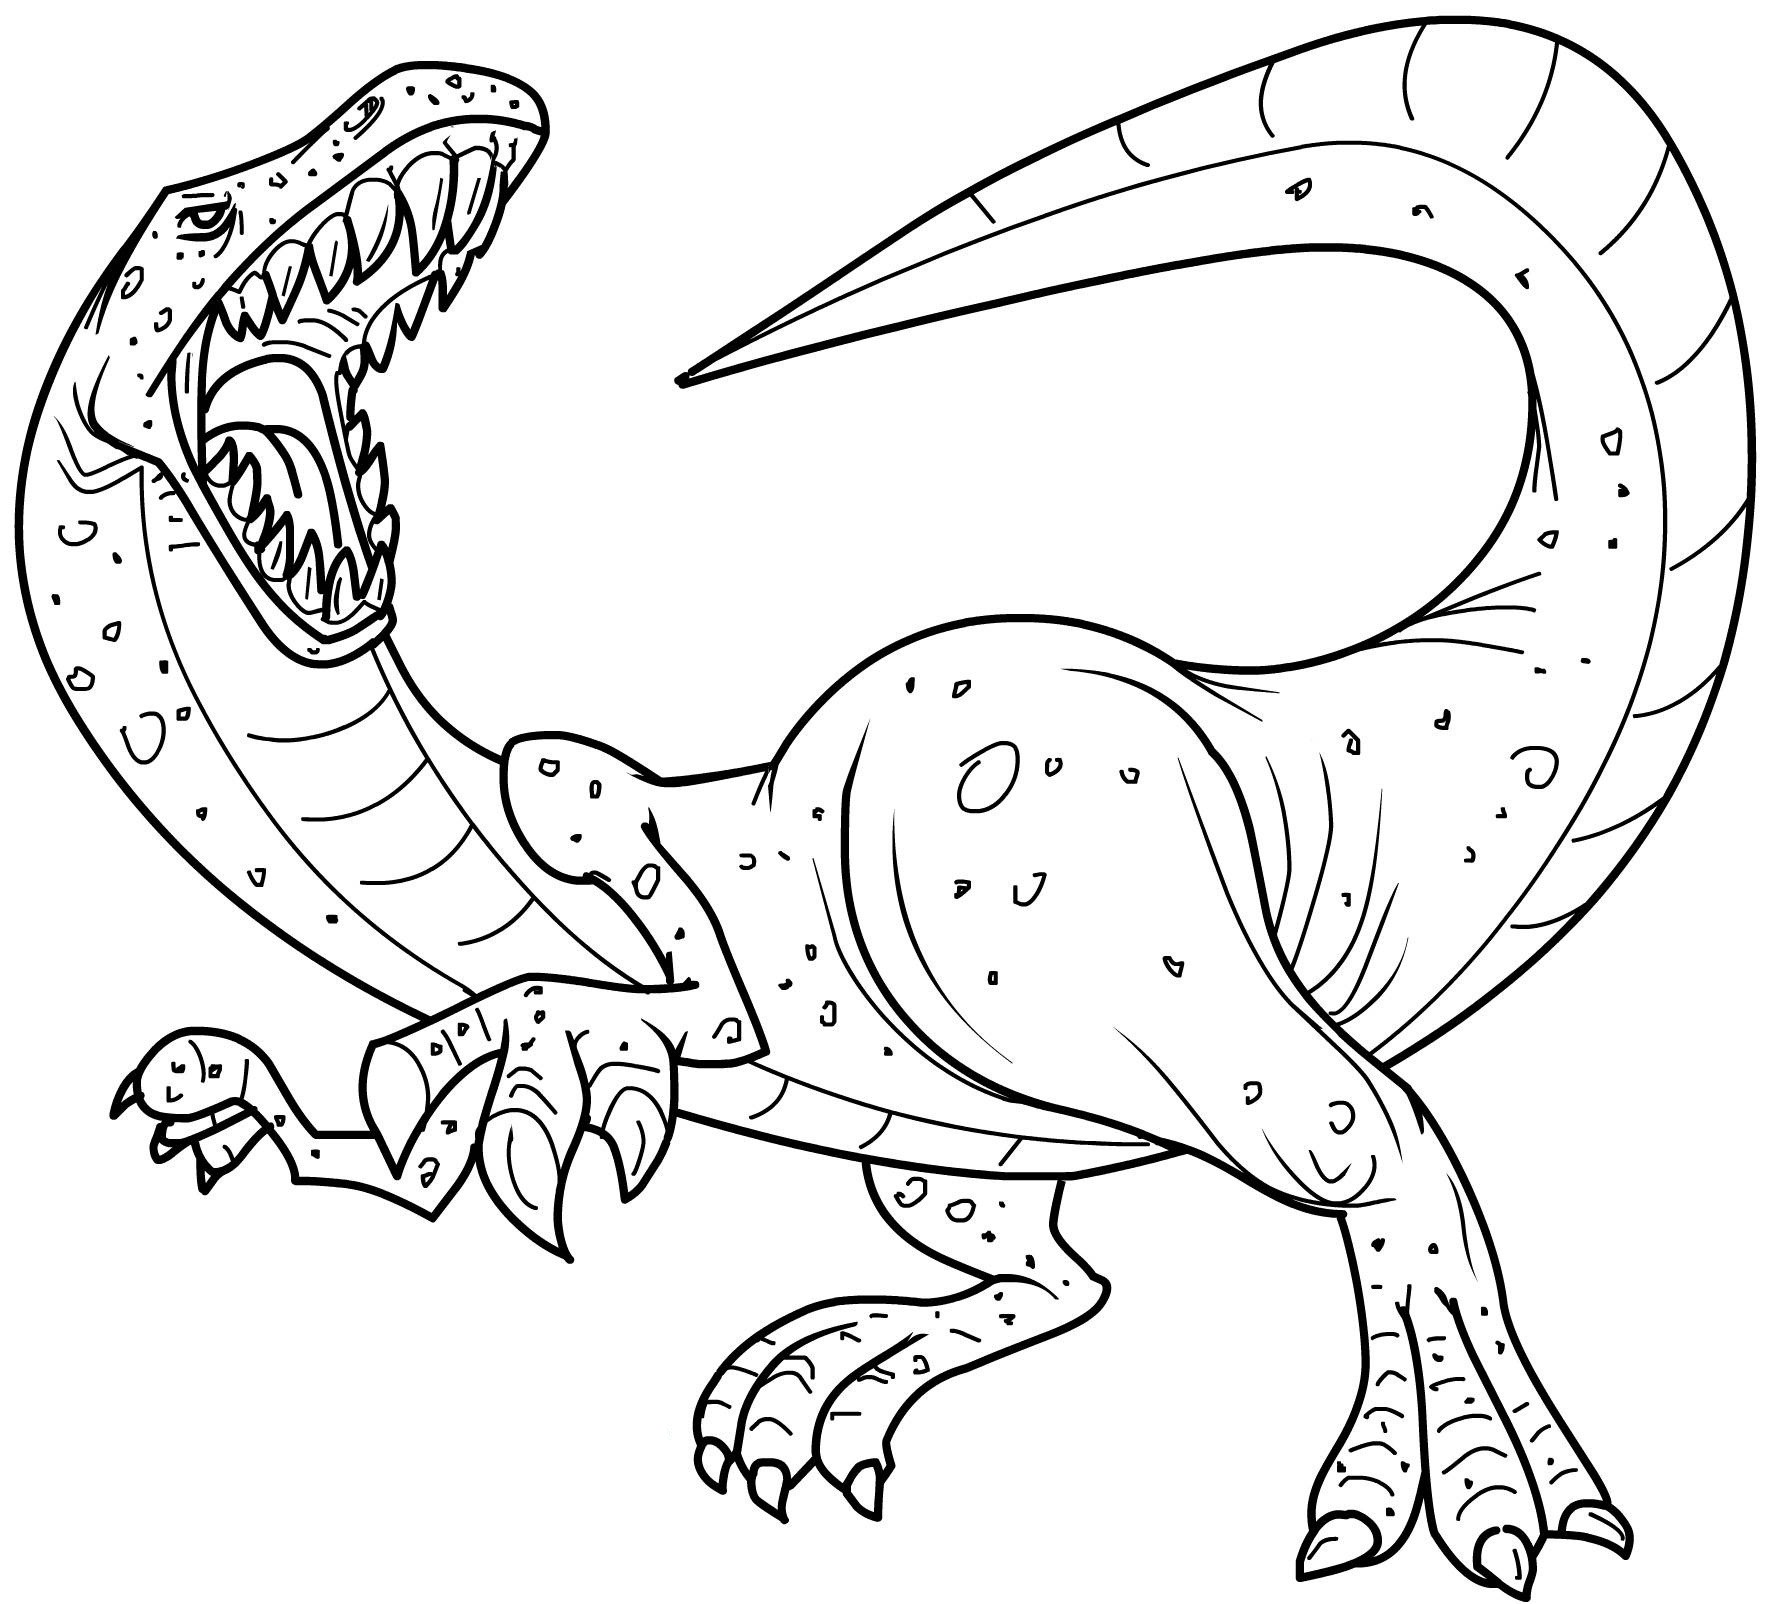 dinossaur coloring pages - photo#14